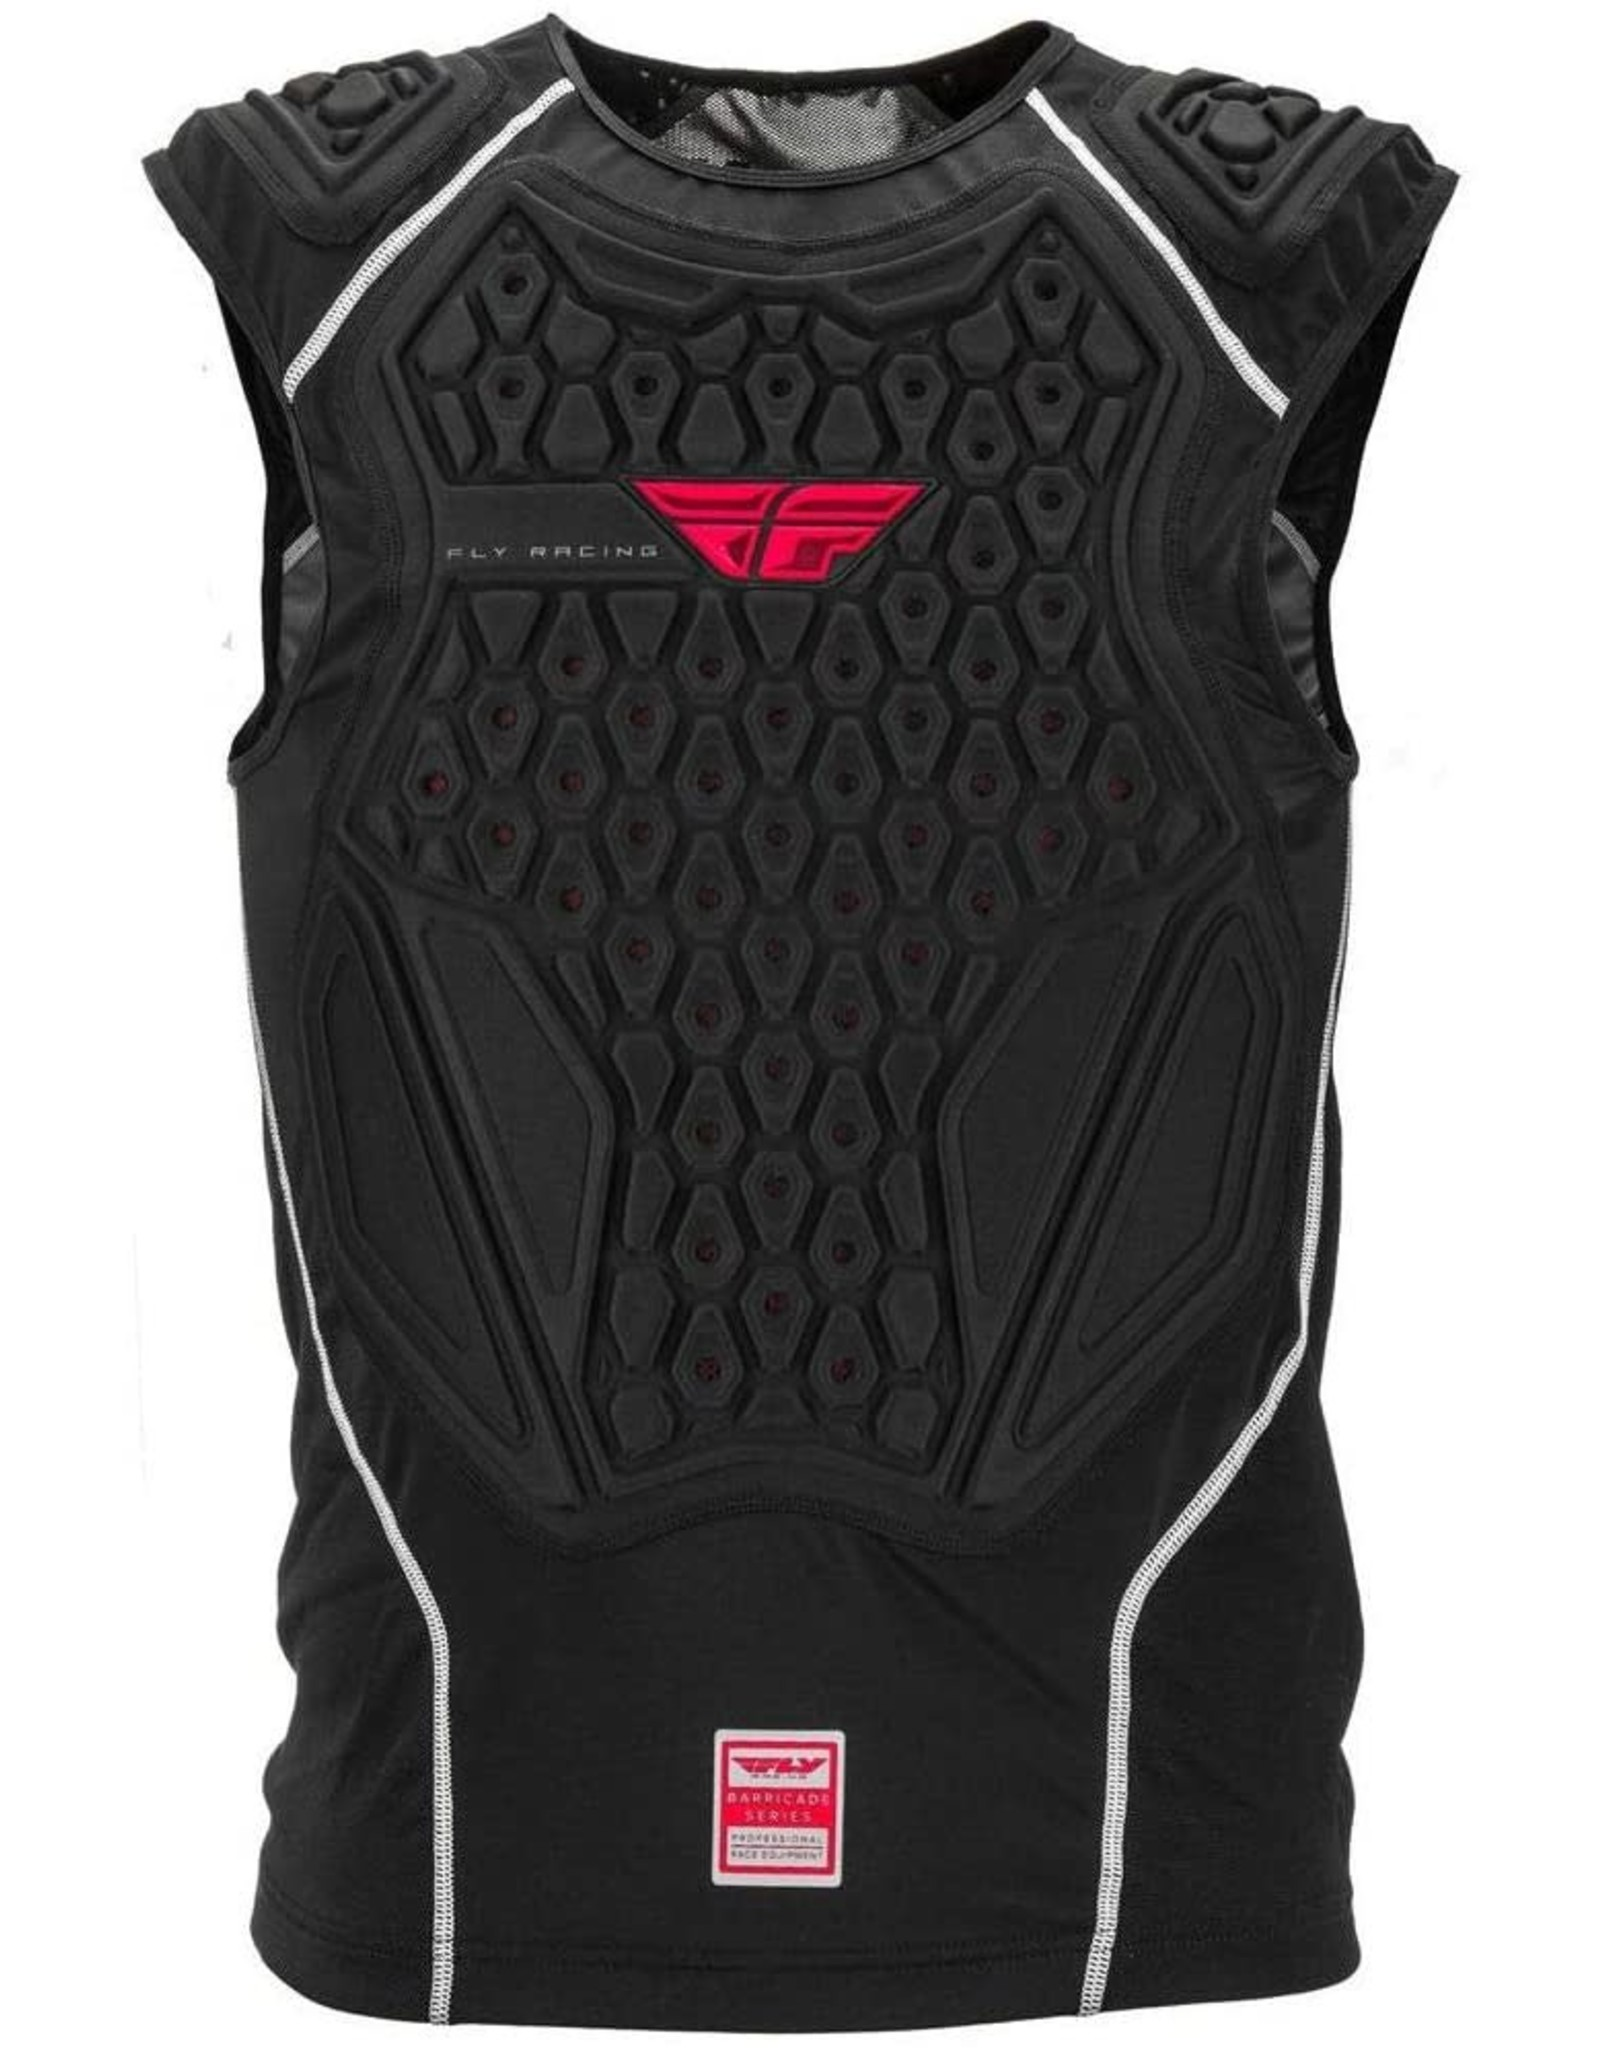 FLY RACING Fly Racing Barricade Pullover Vest